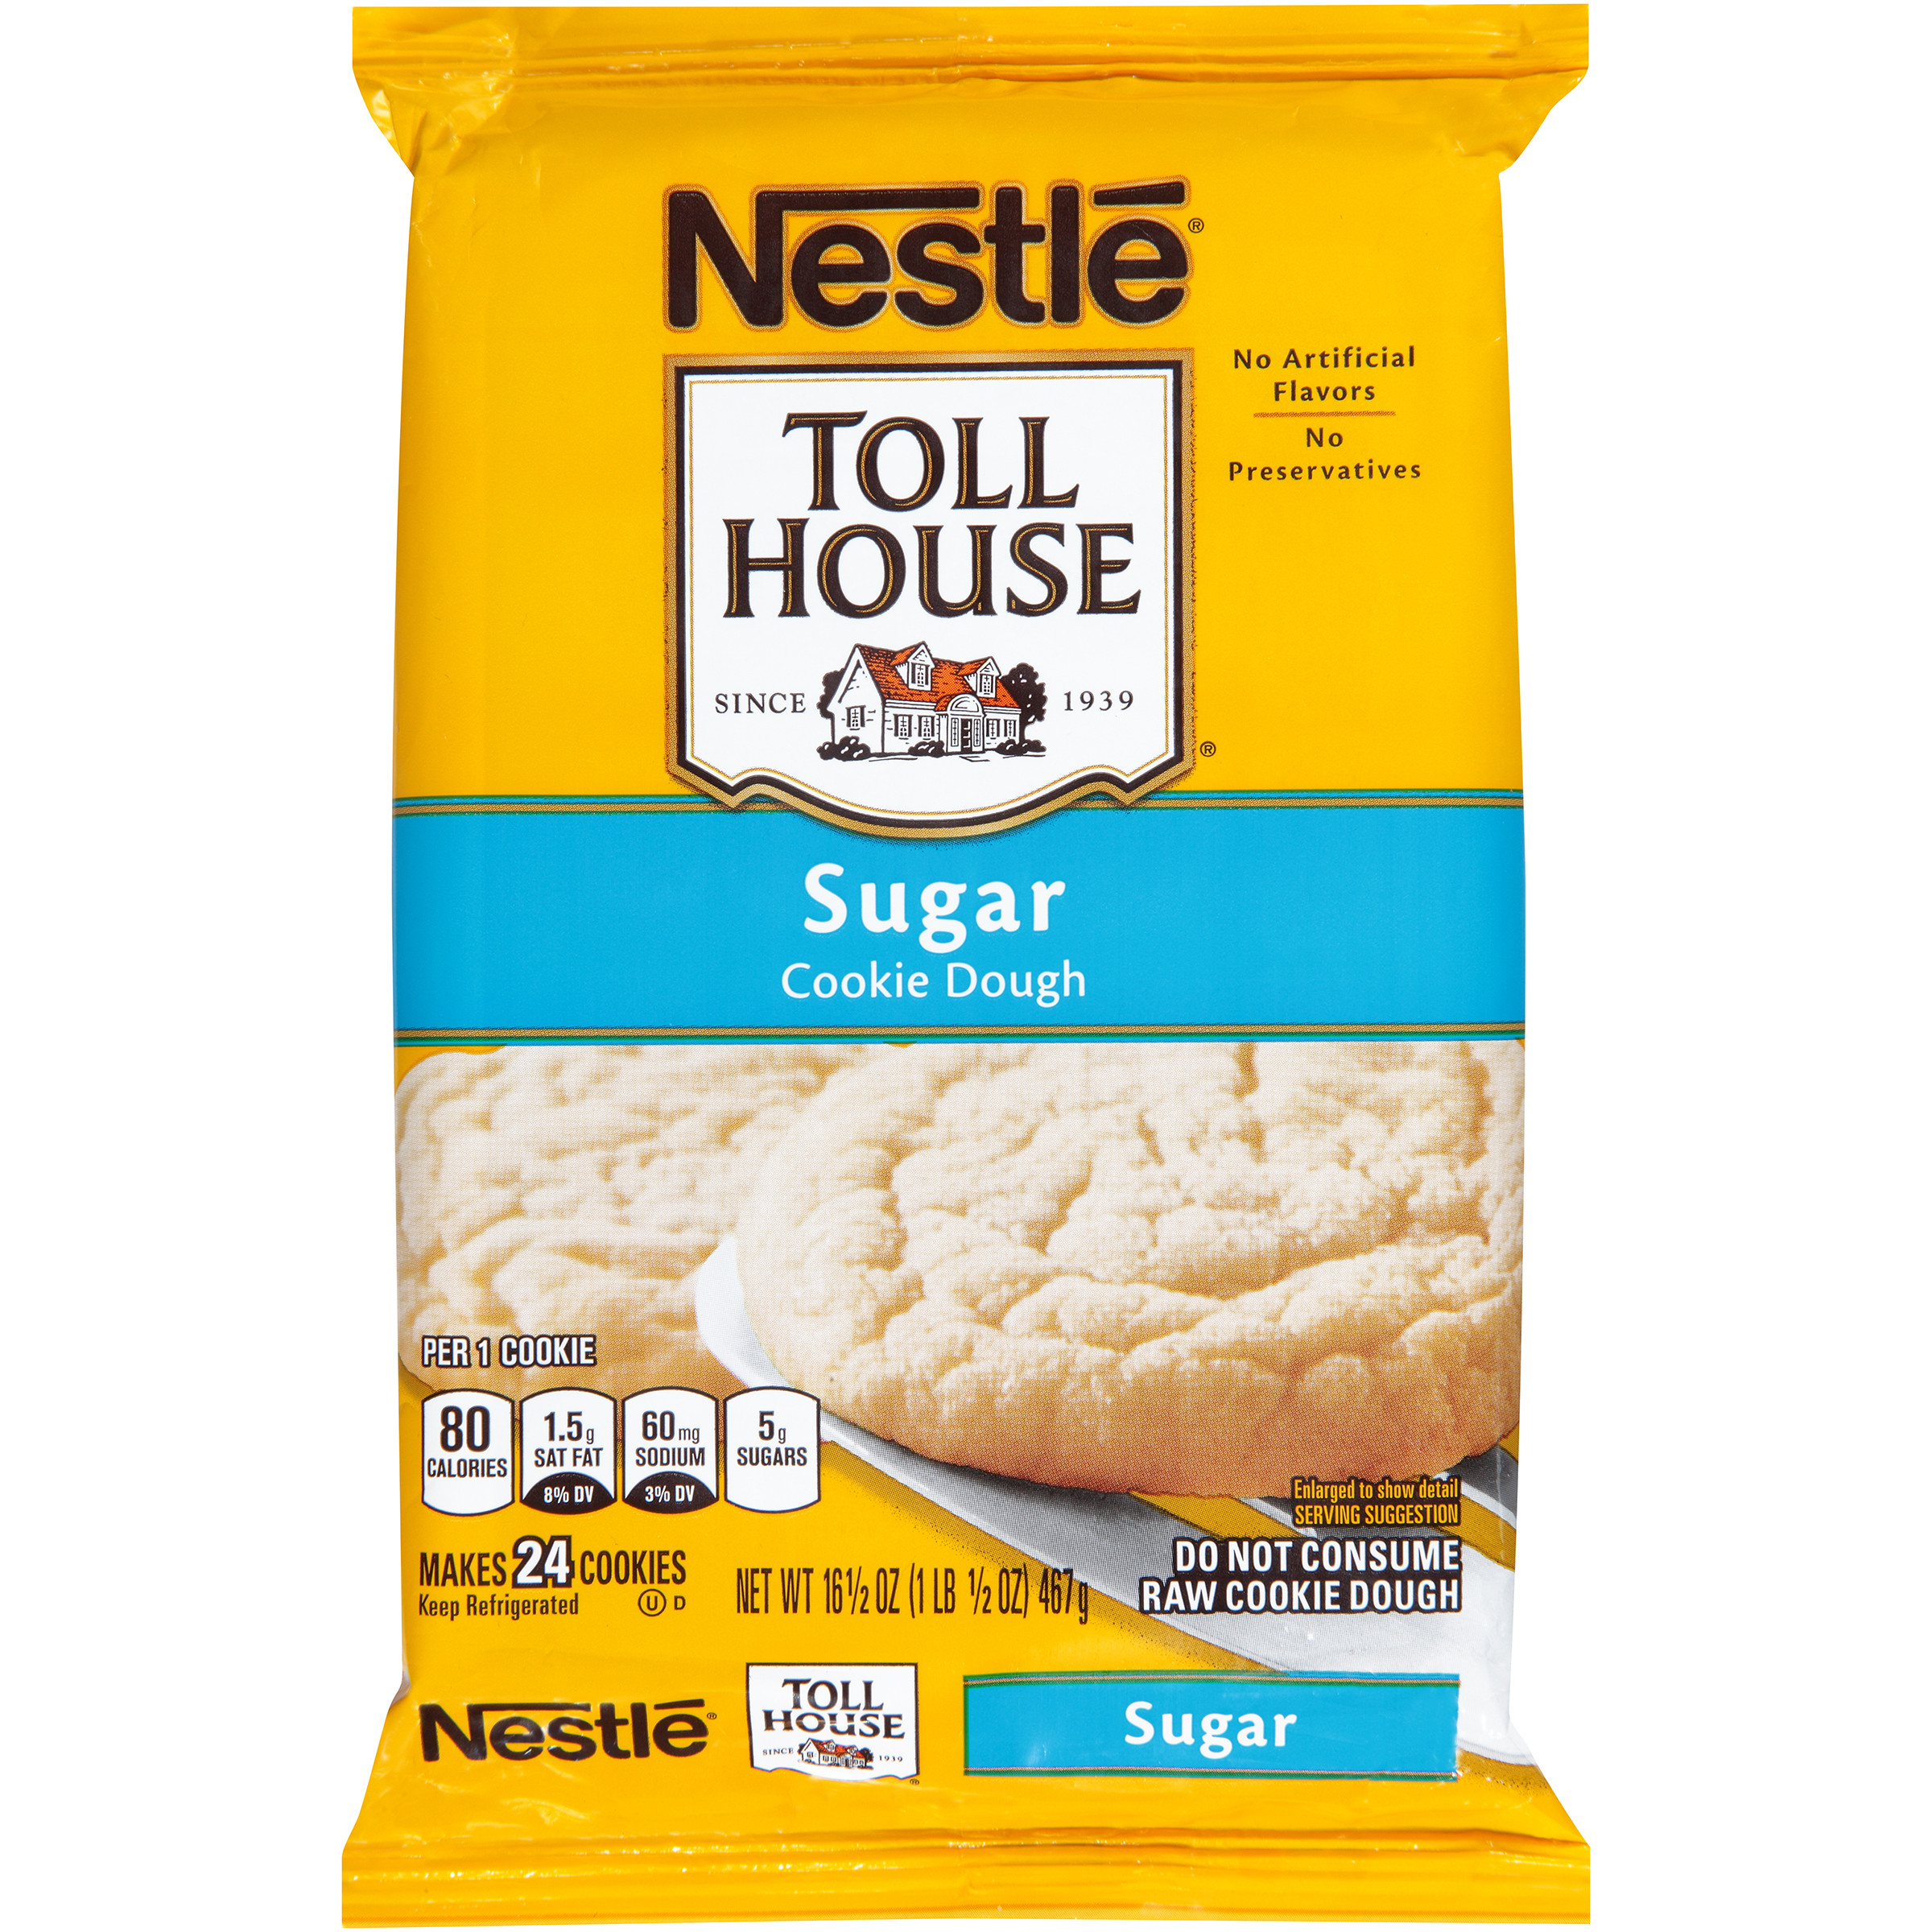 Sugar Free Cookies Walmart  The Bakery Pink Frosted Sugar Cookies 10 count 13 5 oz